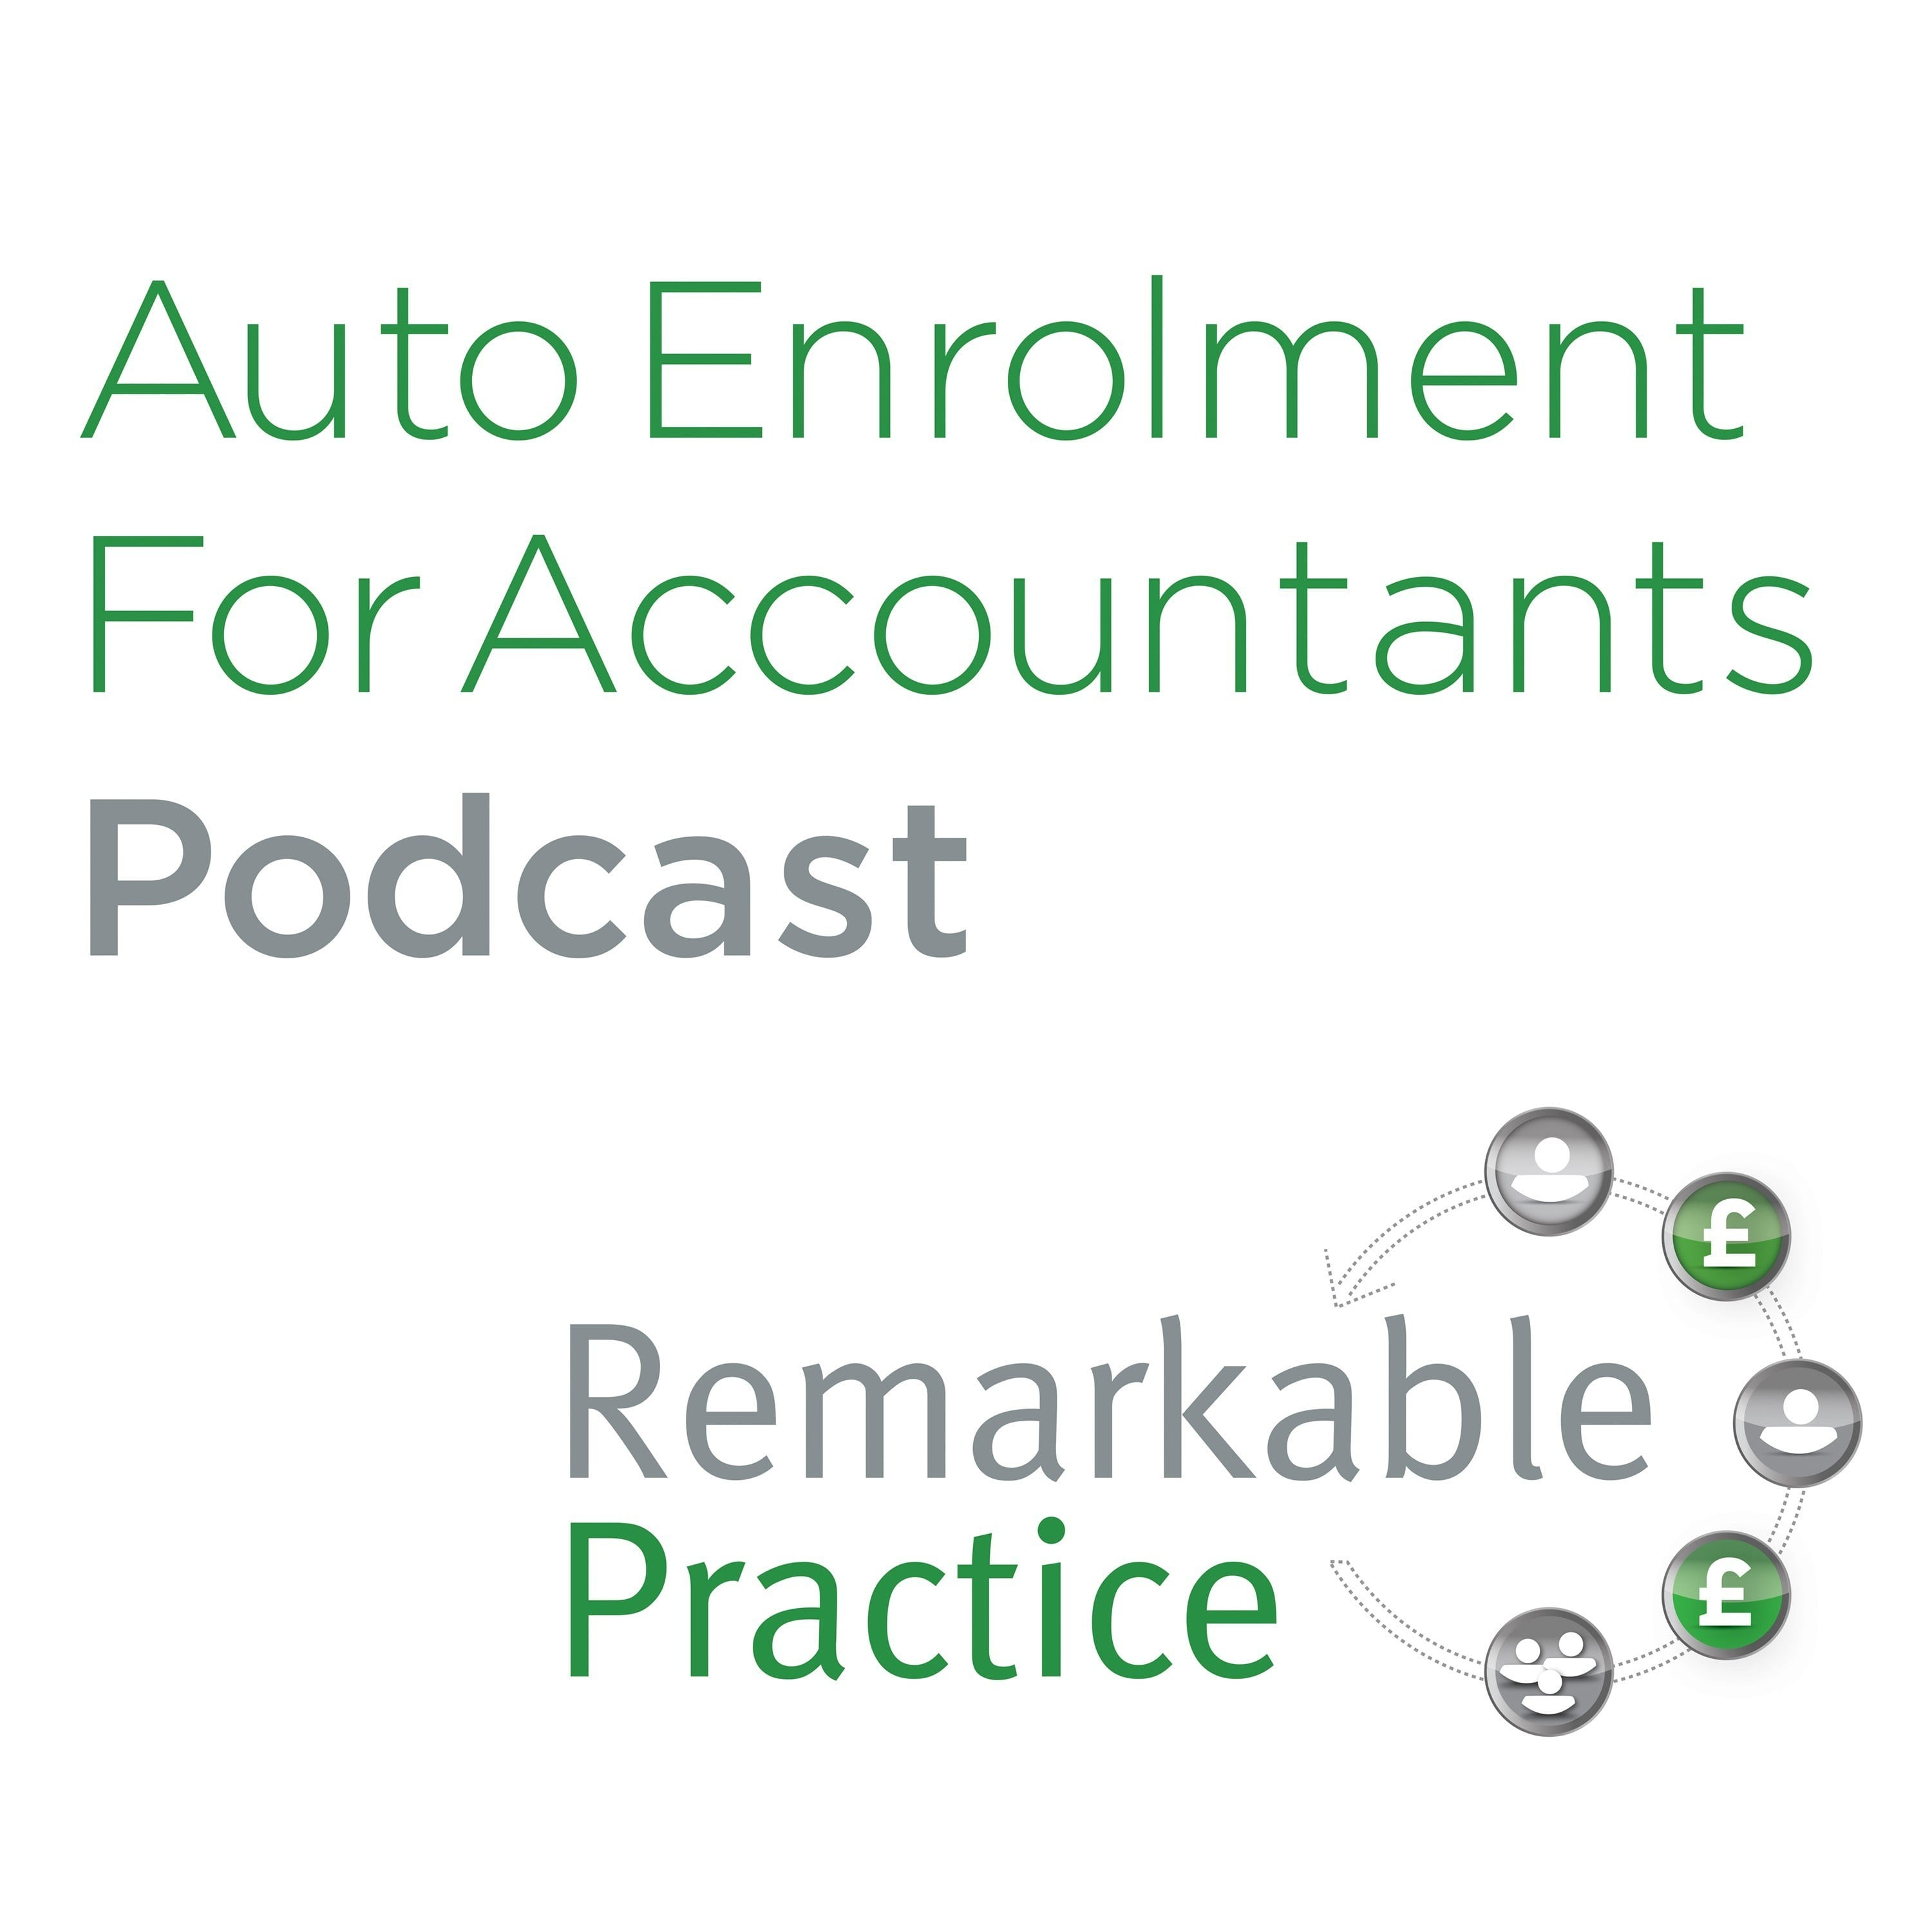 Auto Enrolment Insights For Accountants Podcast